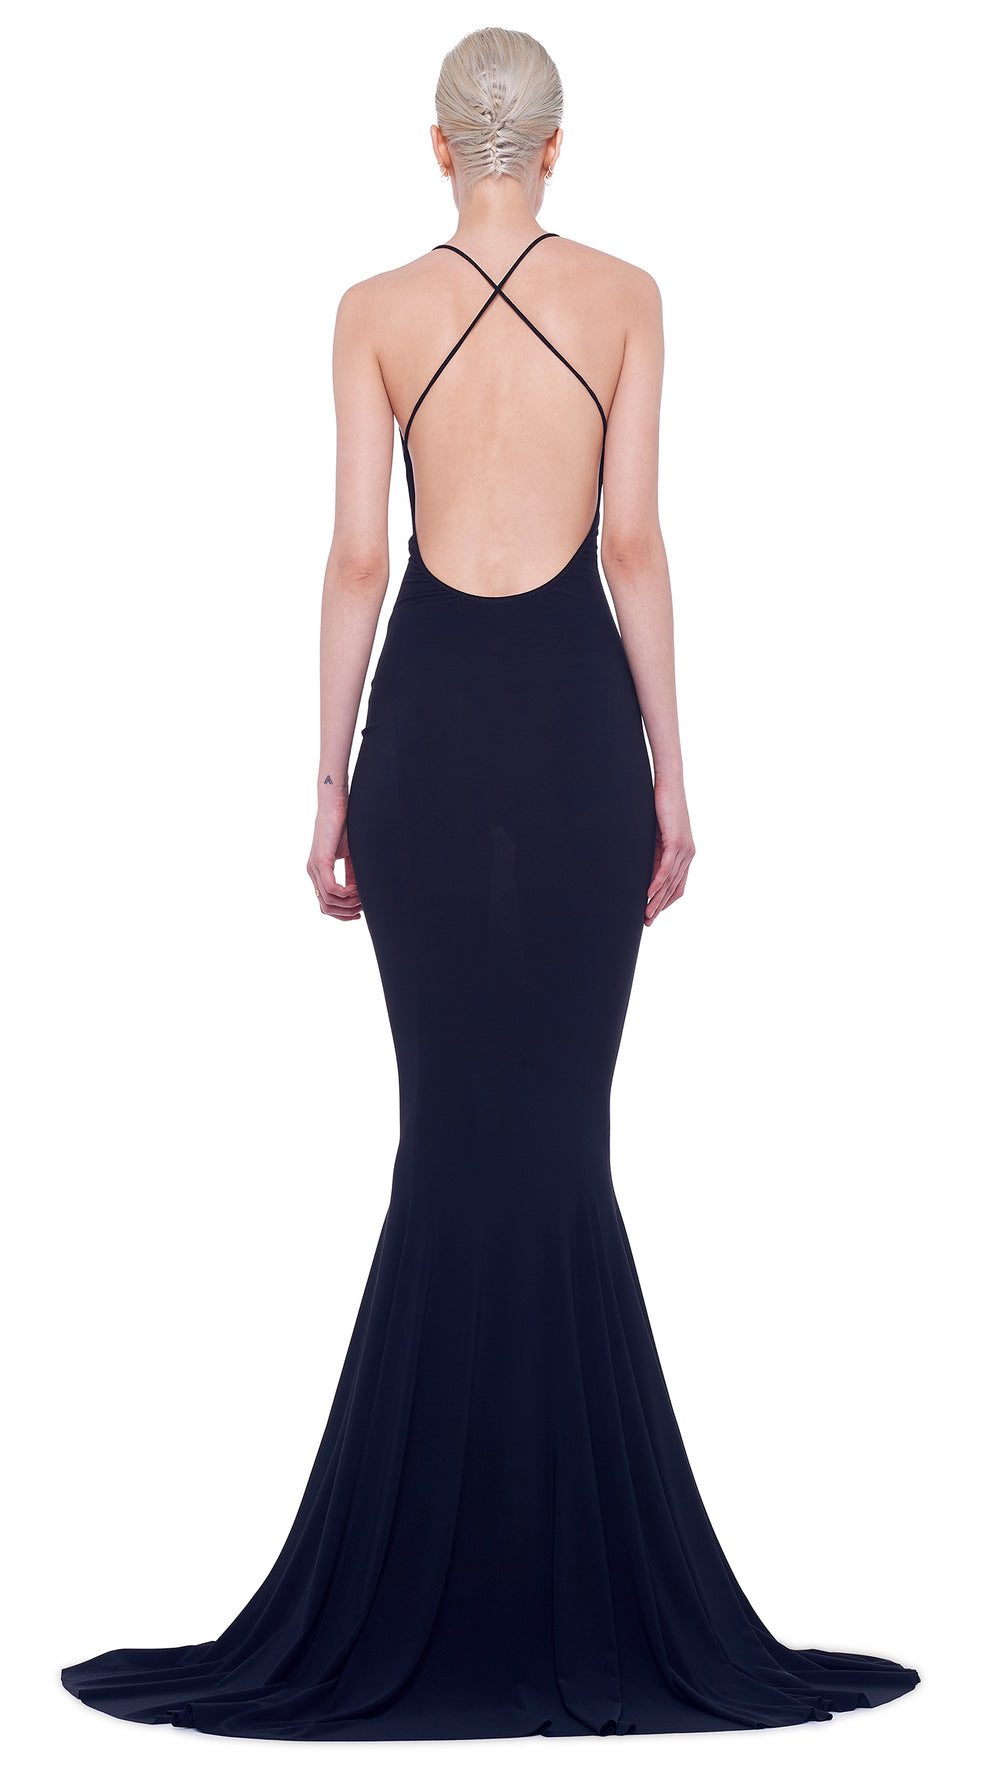 LOW BACK FISHTAIL GOWN